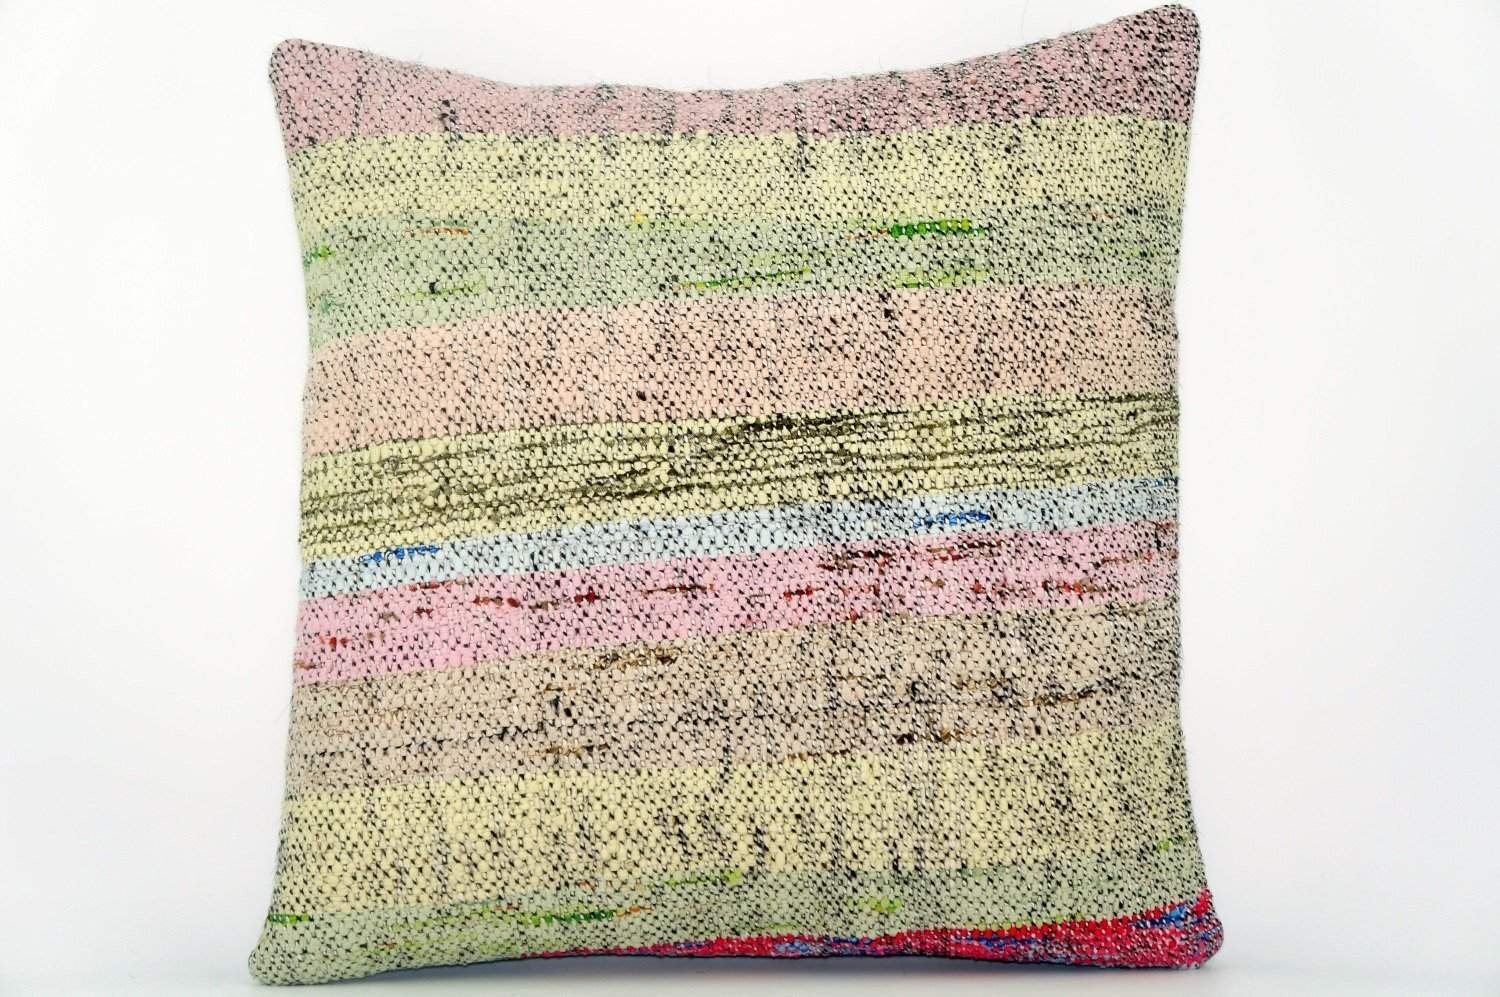 CLEARANCE Handwoven hemp pillow  , Decorative Kilim pillow cover  1560_A - kilimpillowstore  - 1